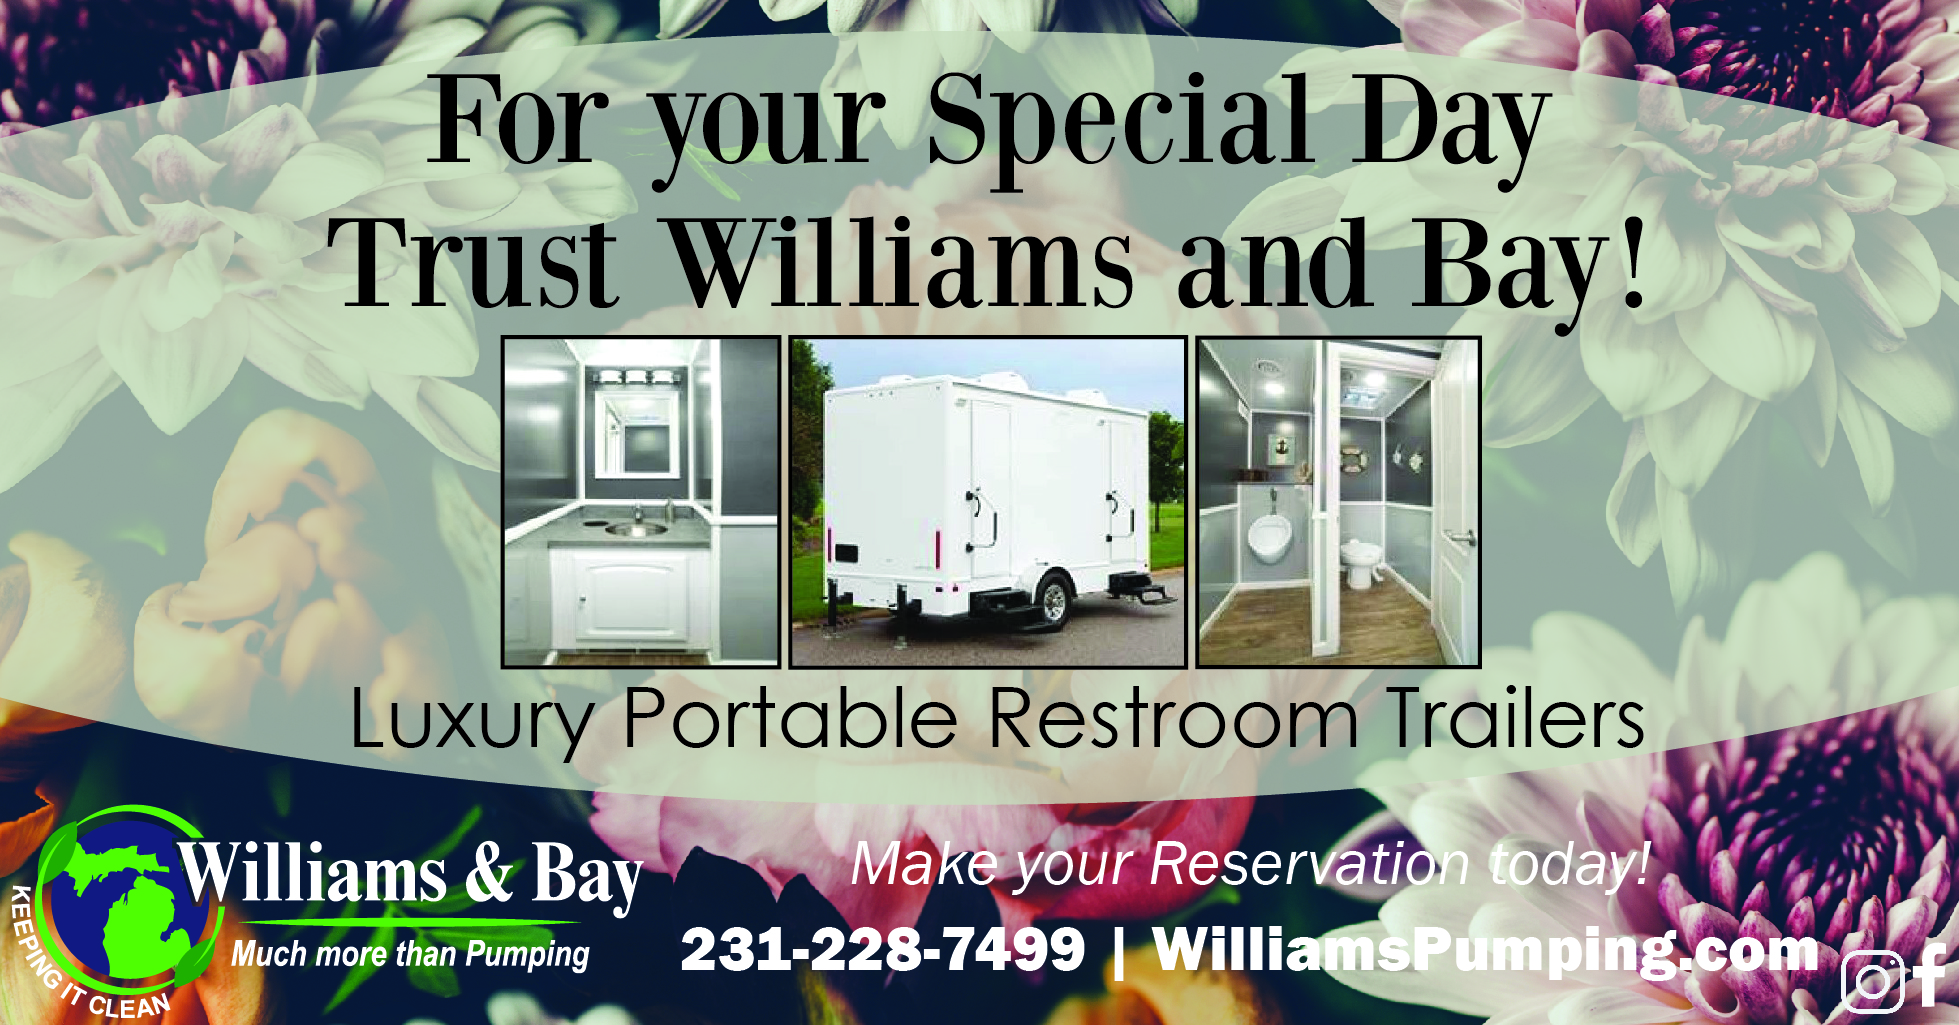 Special Day - Portable Restroom Trailers